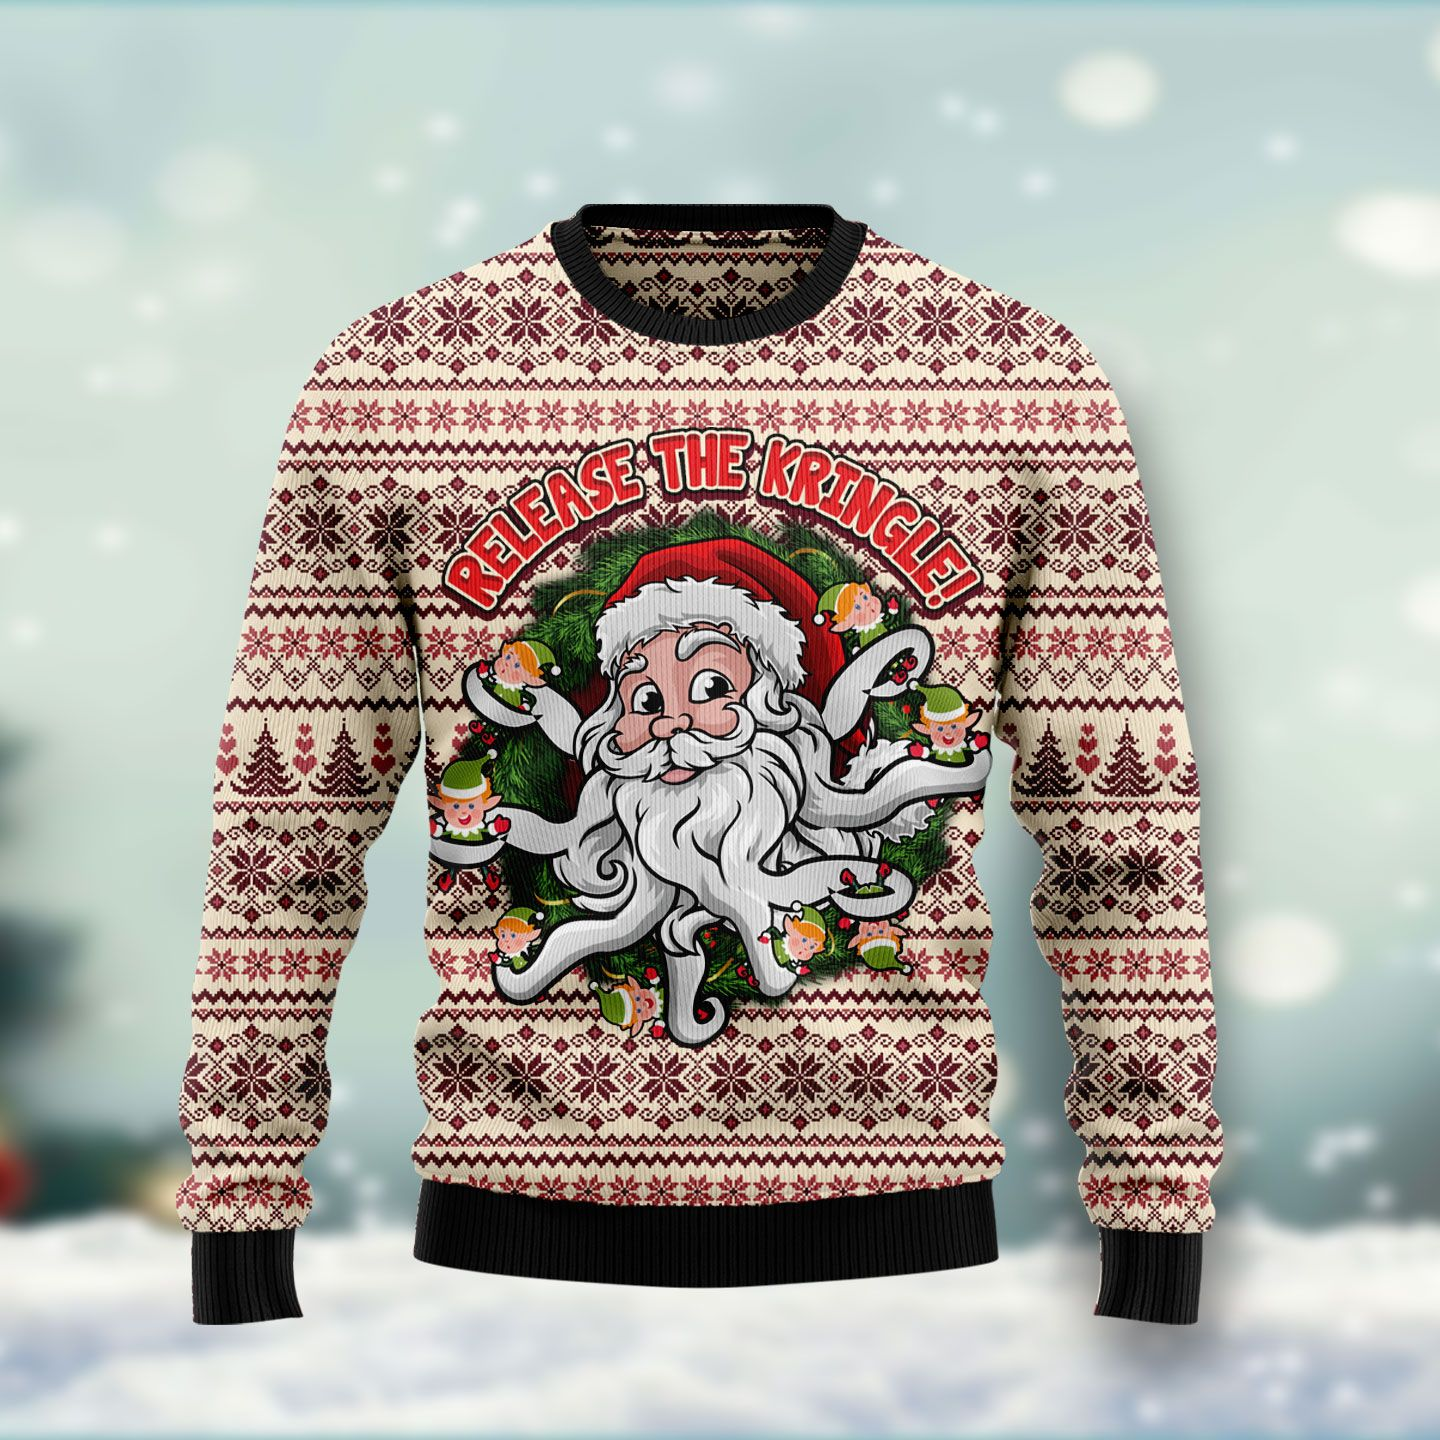 Funny Santa Claus Release the Kringle Wool Christmas Sweater